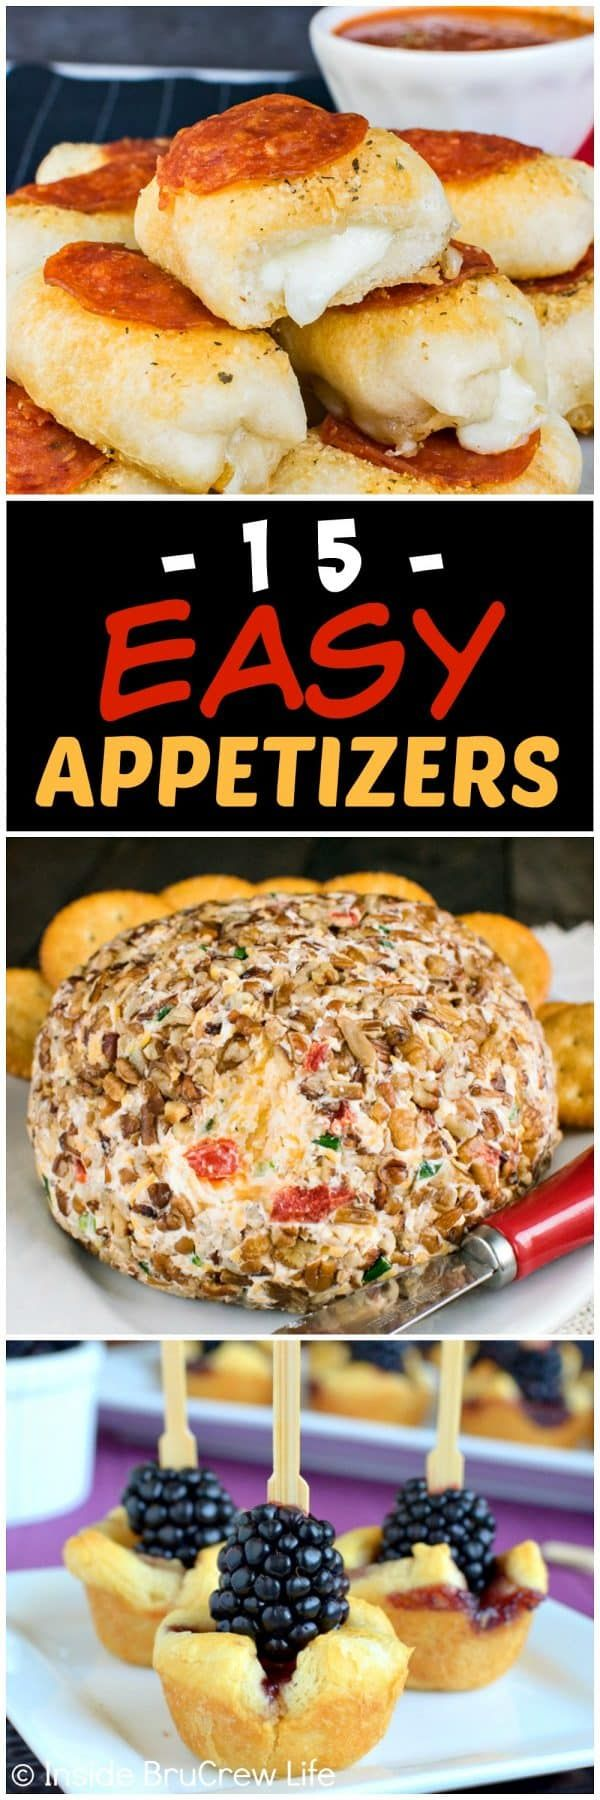 15 Easy Appetizer Recipes - find easy snacks to make for your game day or holiday parties. Enjoy an entire snack dinner and game night with the family using recipes from here.